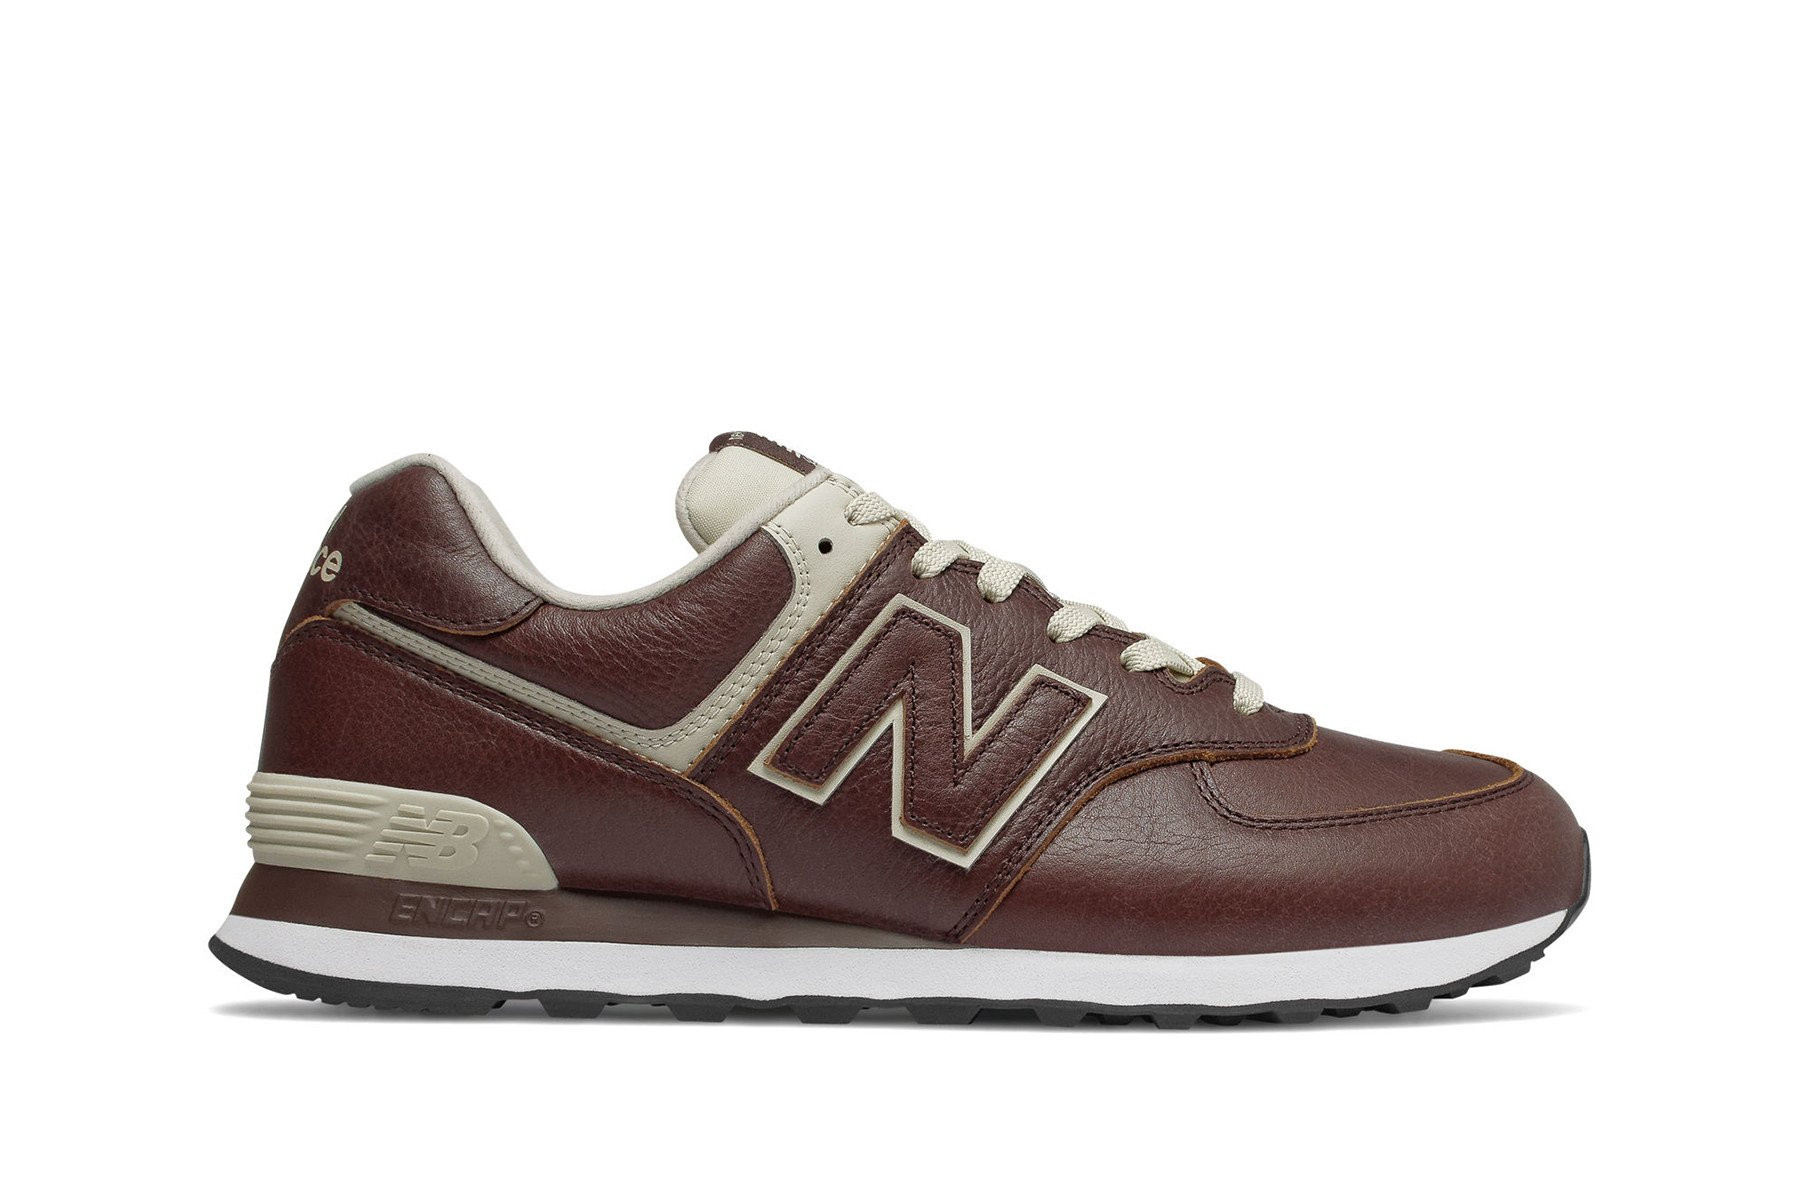 New Balance Ml574lpb, - ,To Be Dressed | StyleSearch